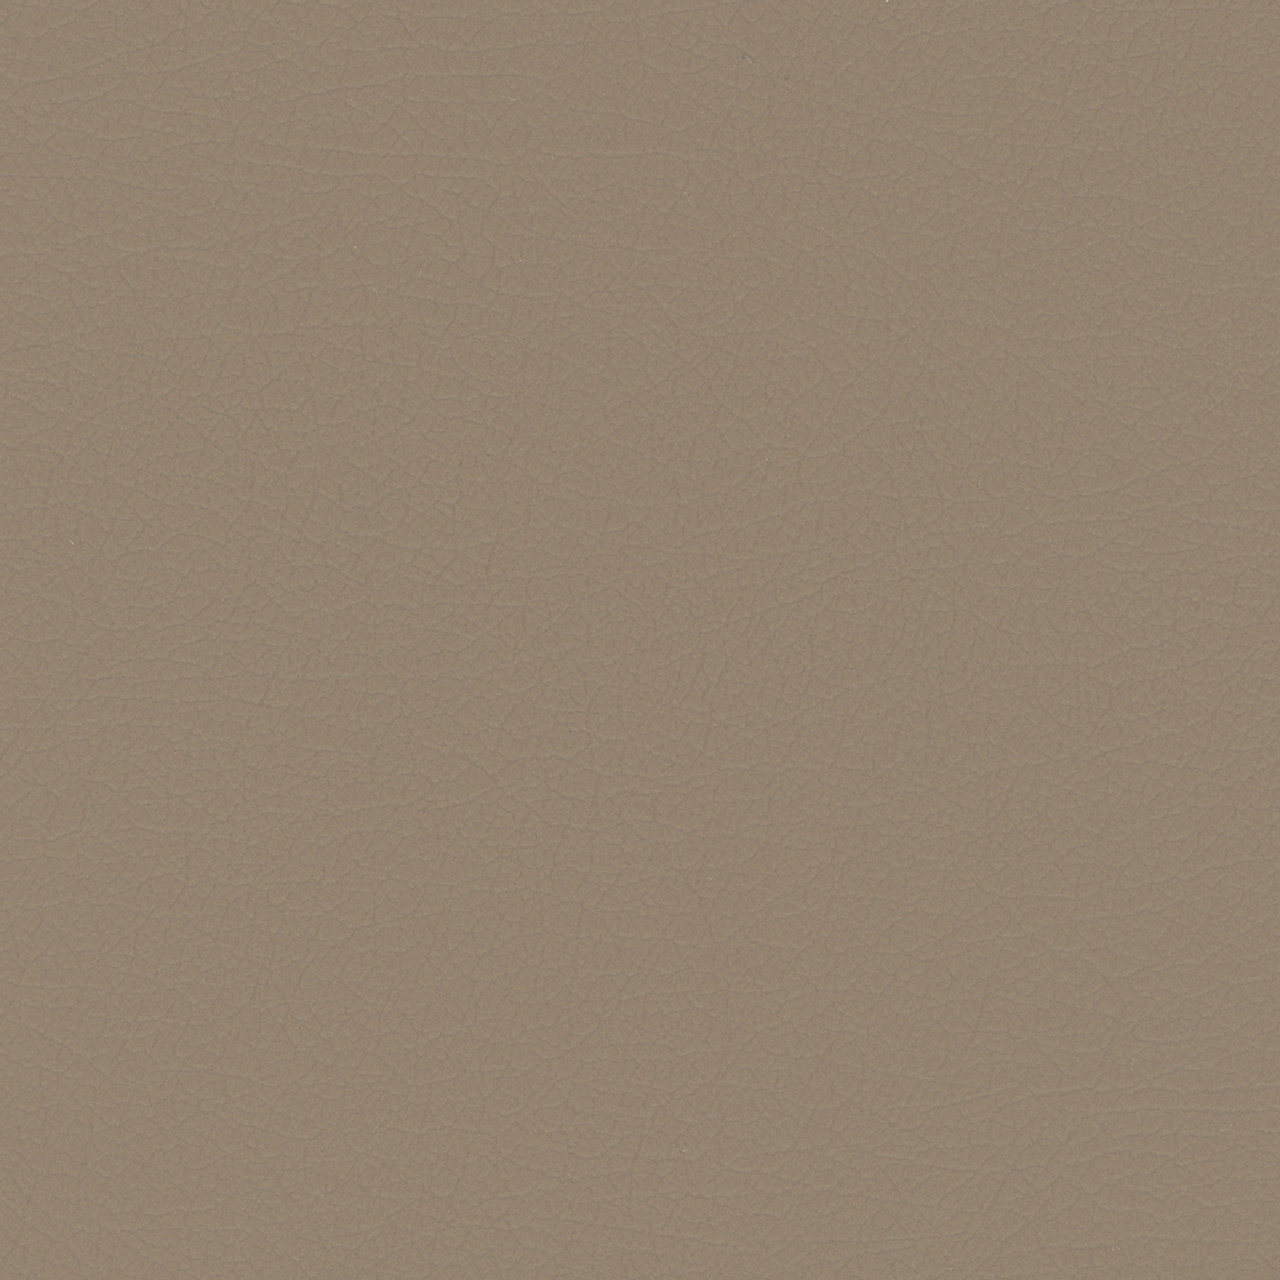 Nuance NUA-2463 Medium Neutral